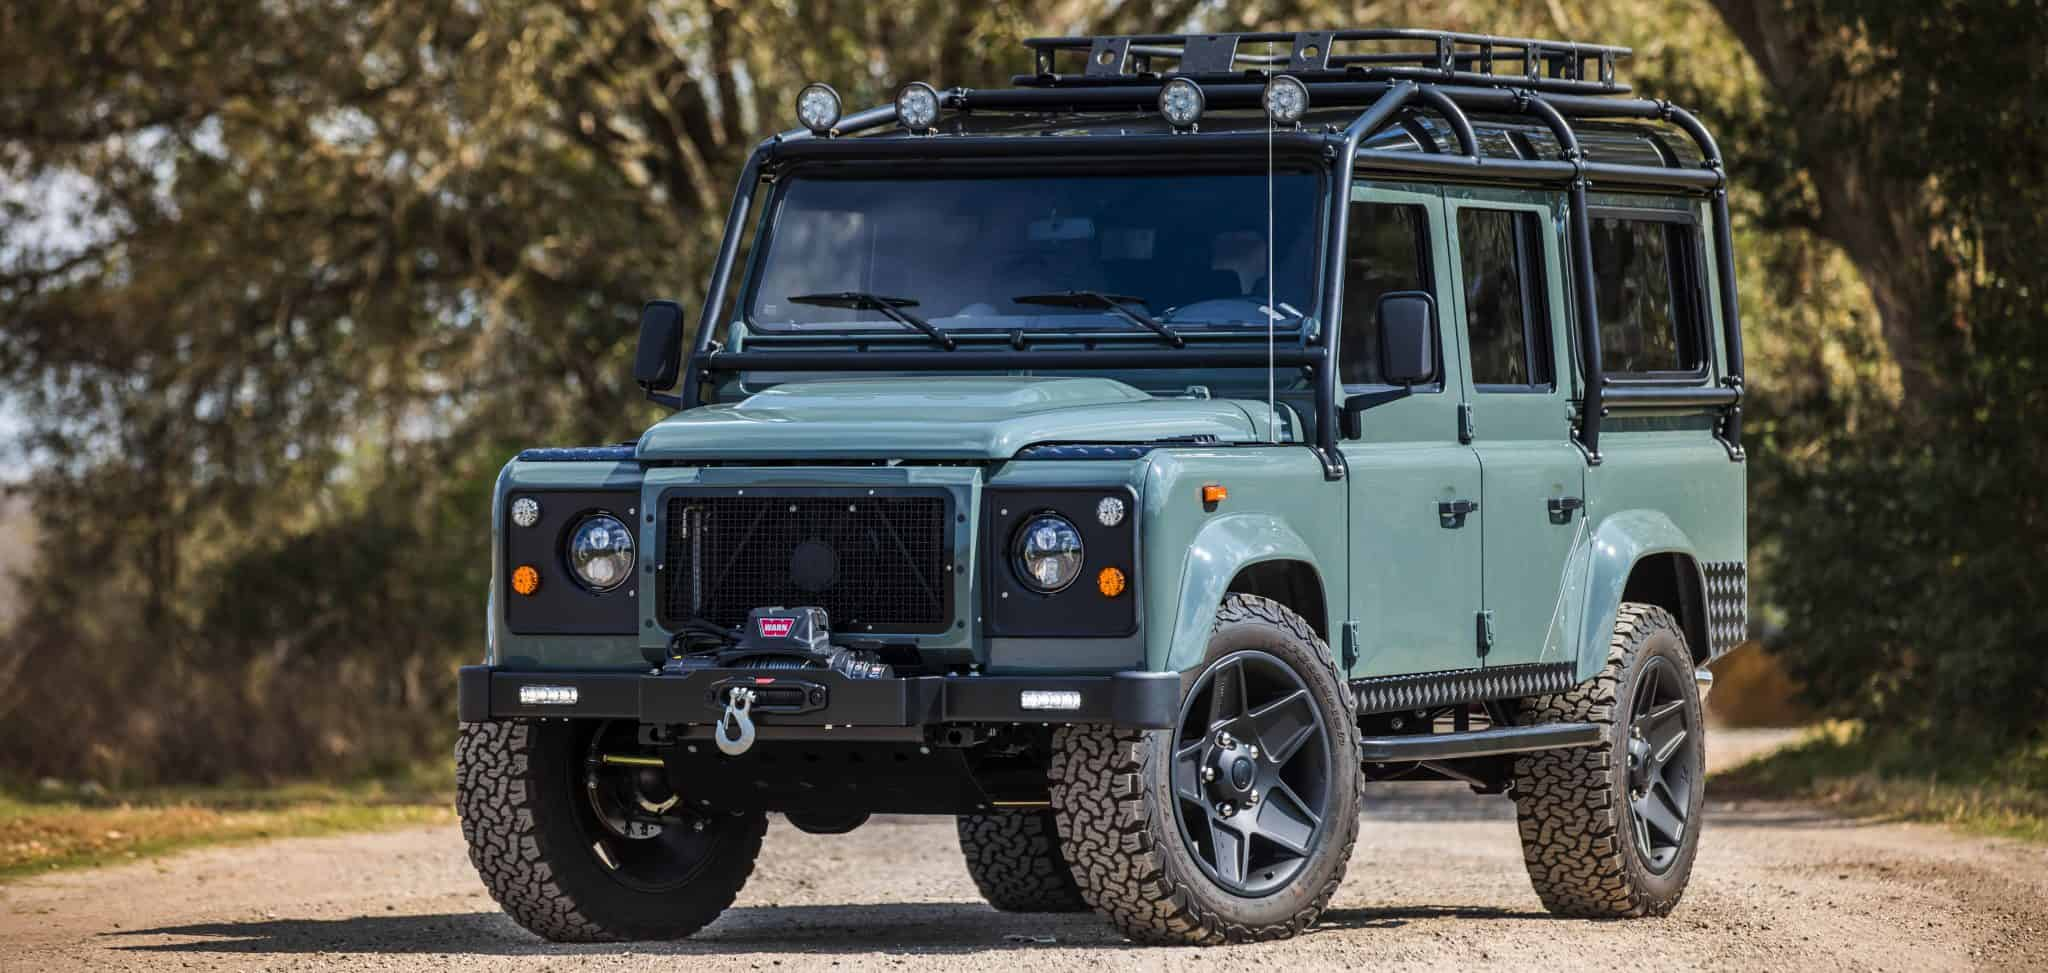 Land Rover Defender Usa >> Custom Defender 90 & 110 for Sale created by ECD Automotive Design in the USA.